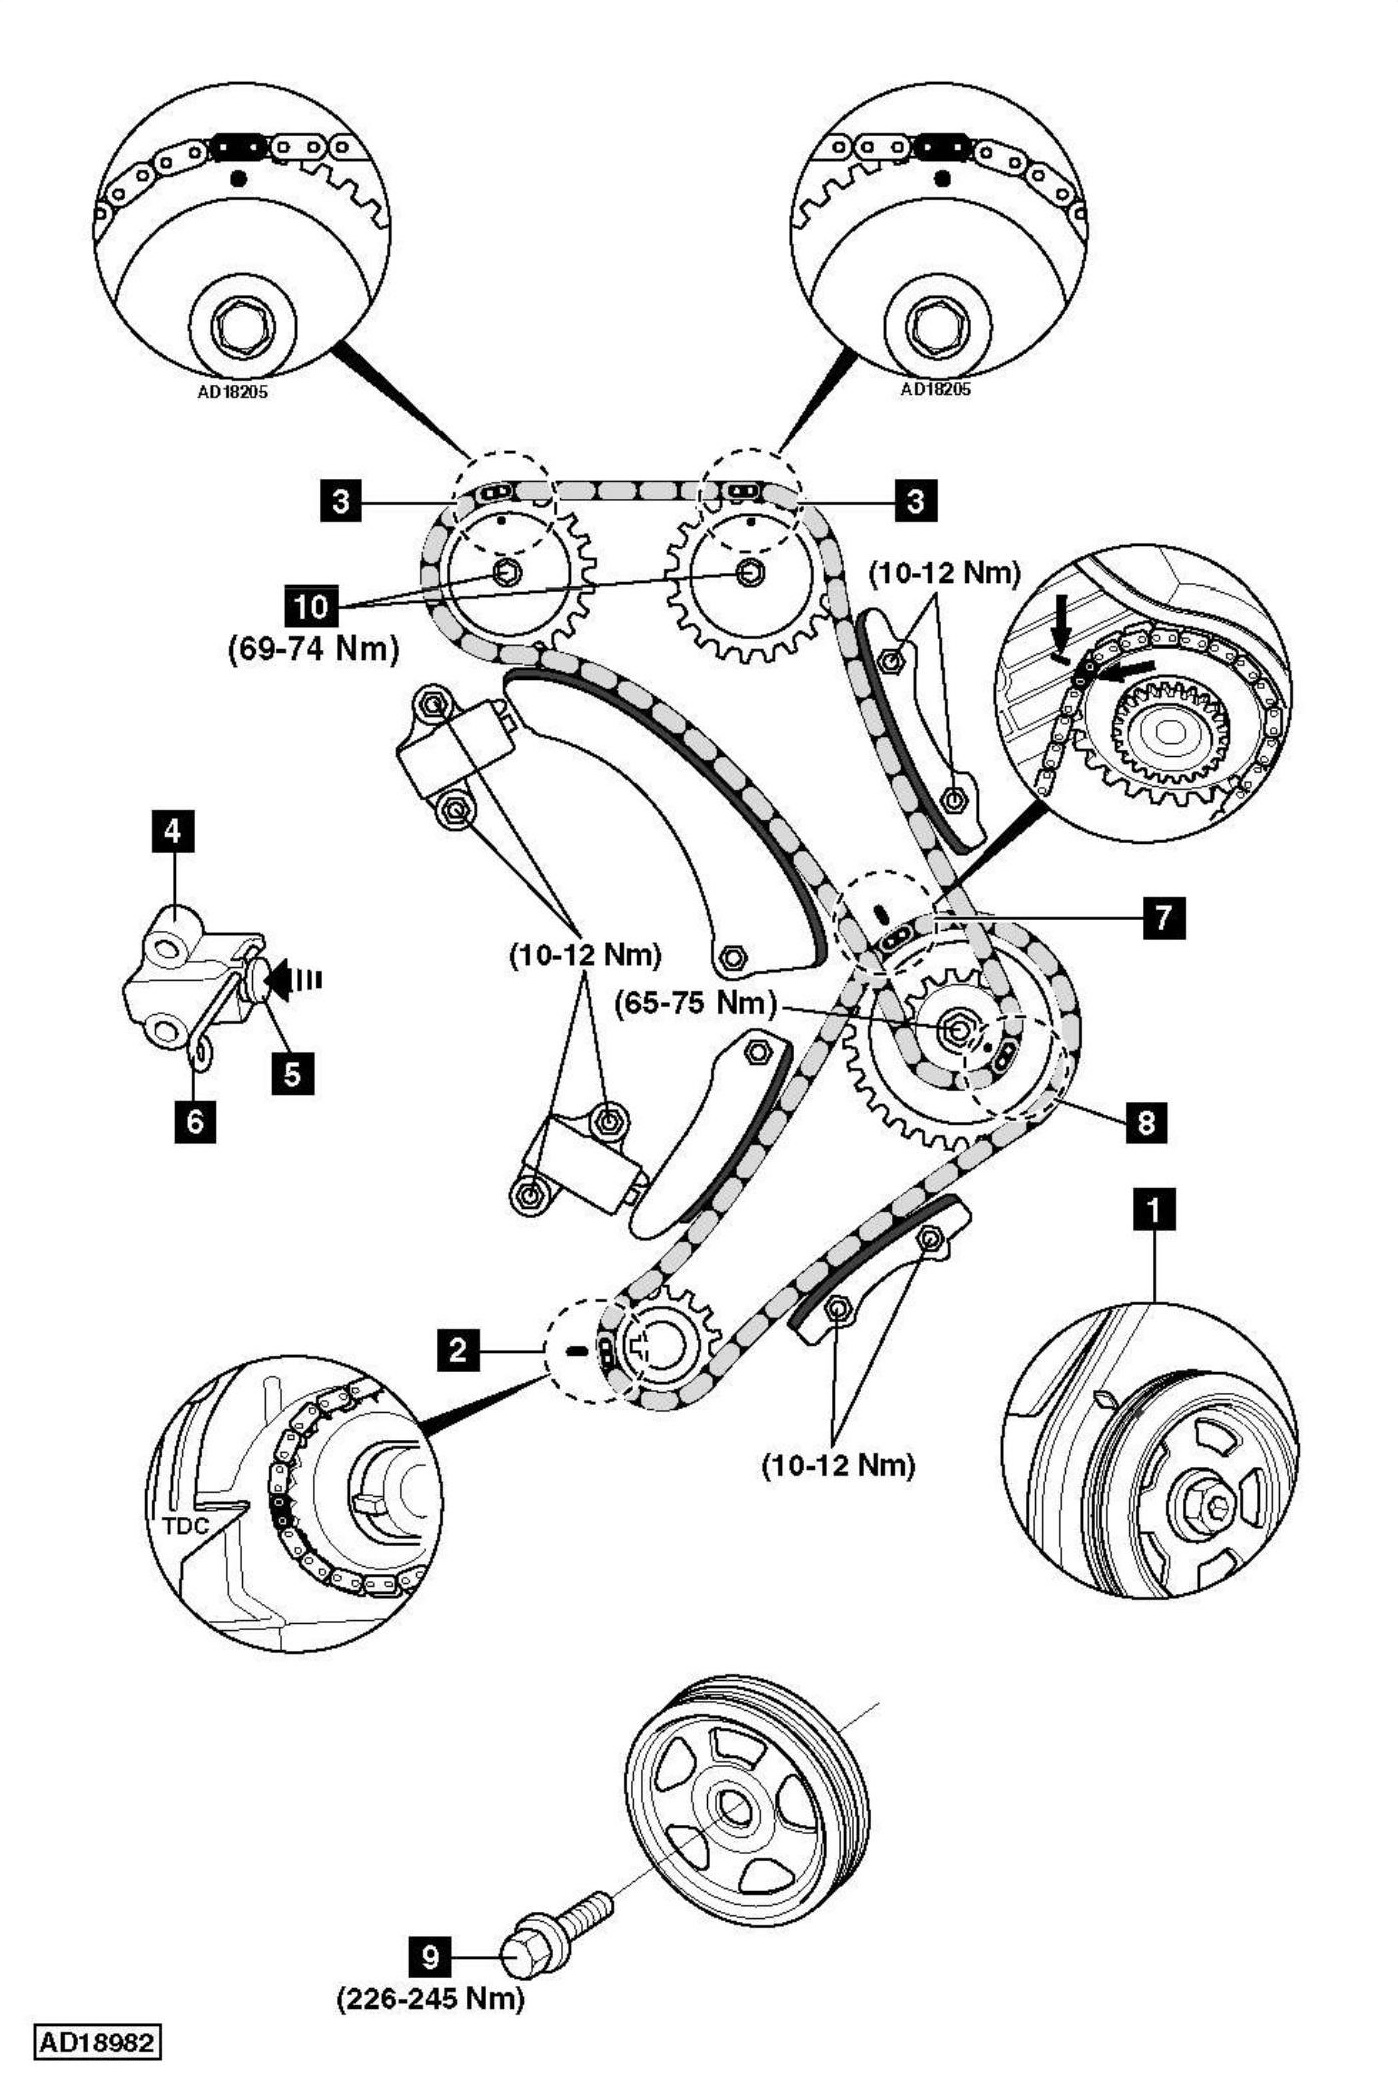 Hyundai Santa Fe Timing Belt Replacement Diagram